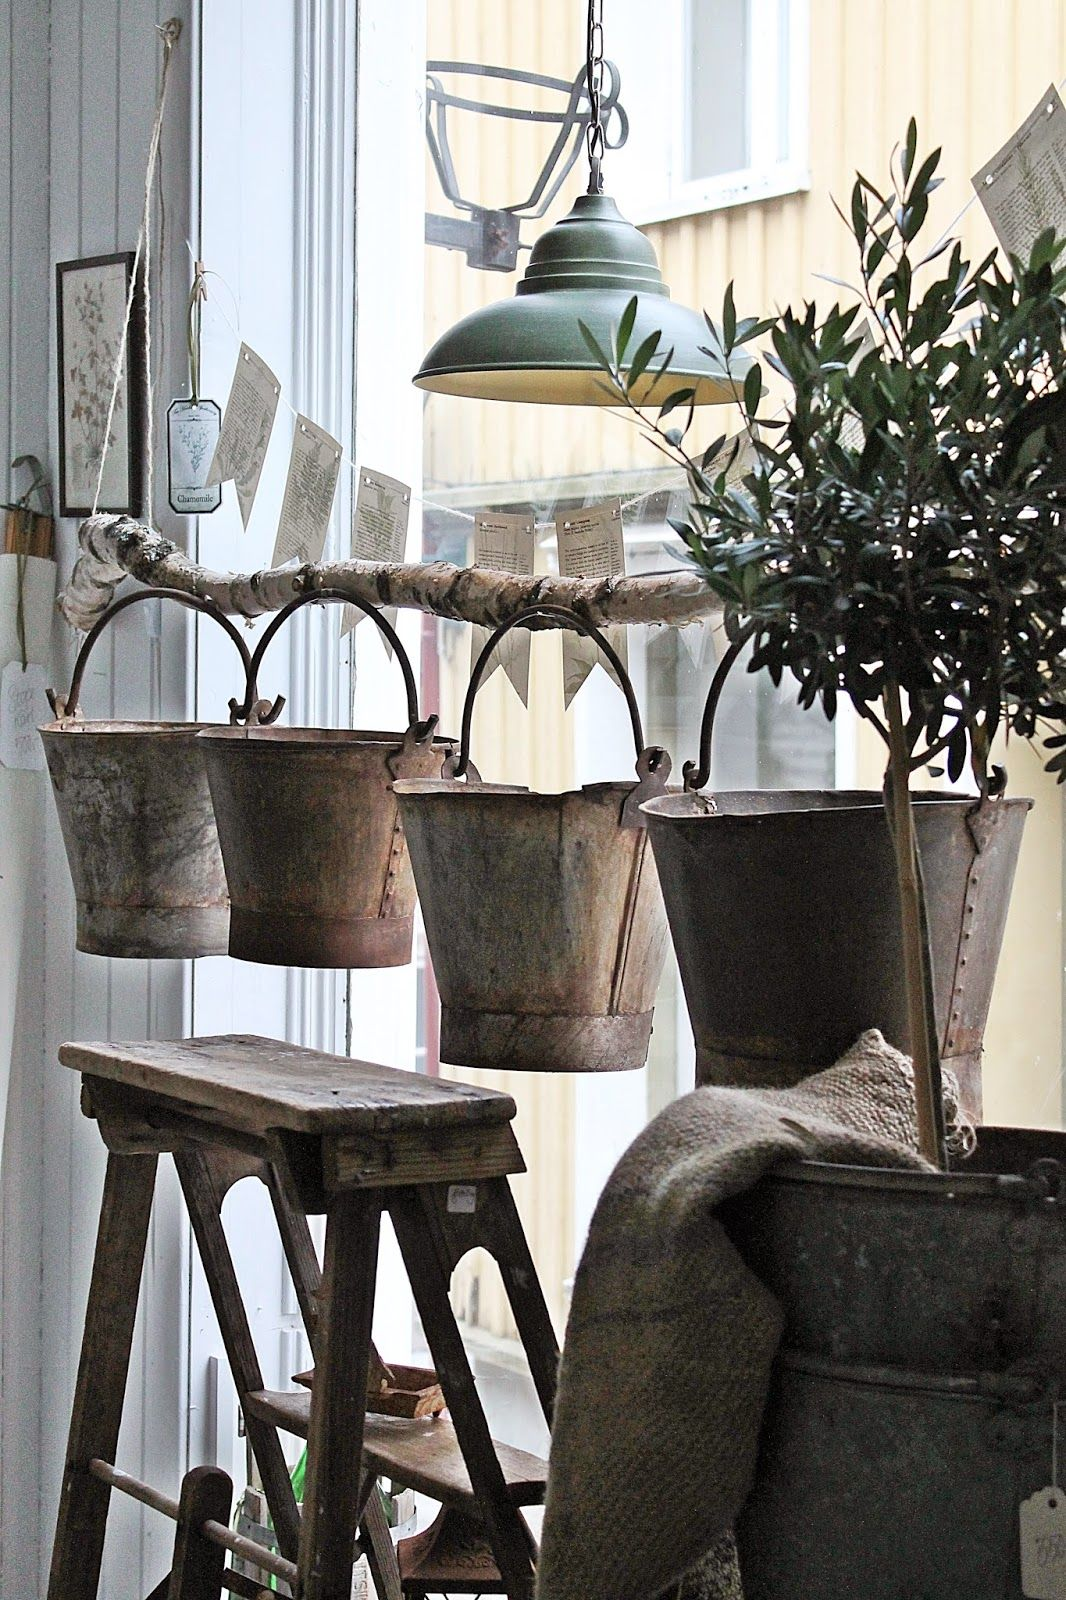 Vibeke design h st i vibeke design butikken bucket for Architecture industrielle